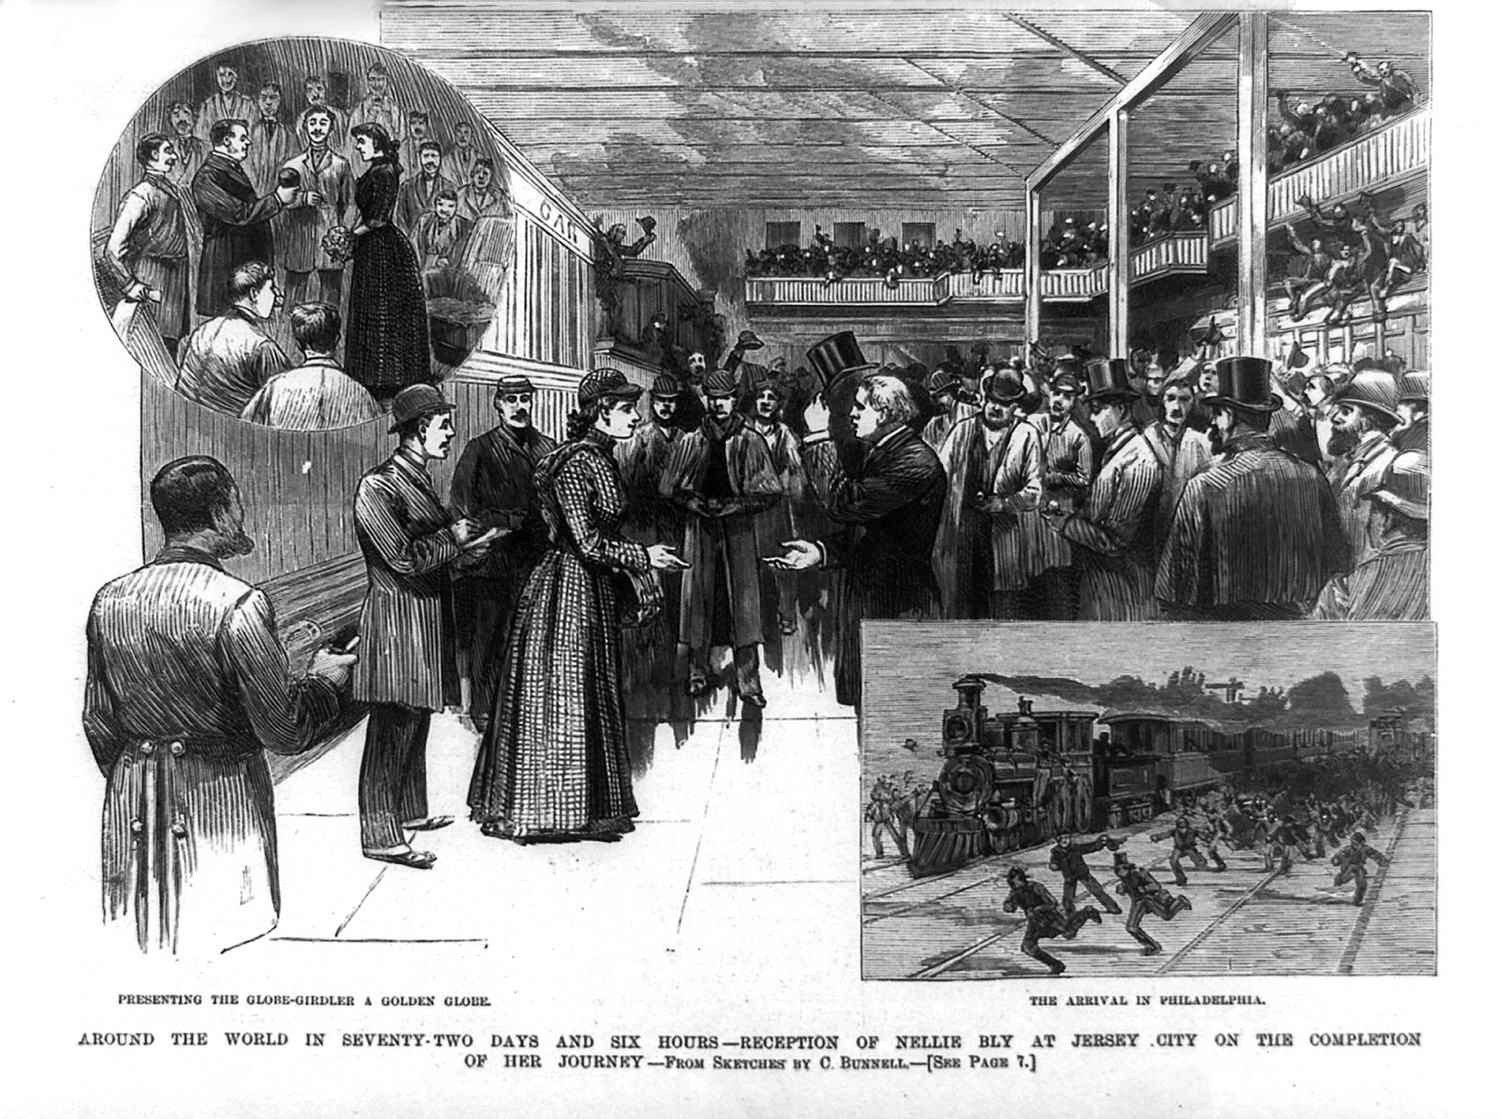 Woodcut of Nellie Bly's reception at Jersey City, 1890. Courtesy of Wikimedia Commons.